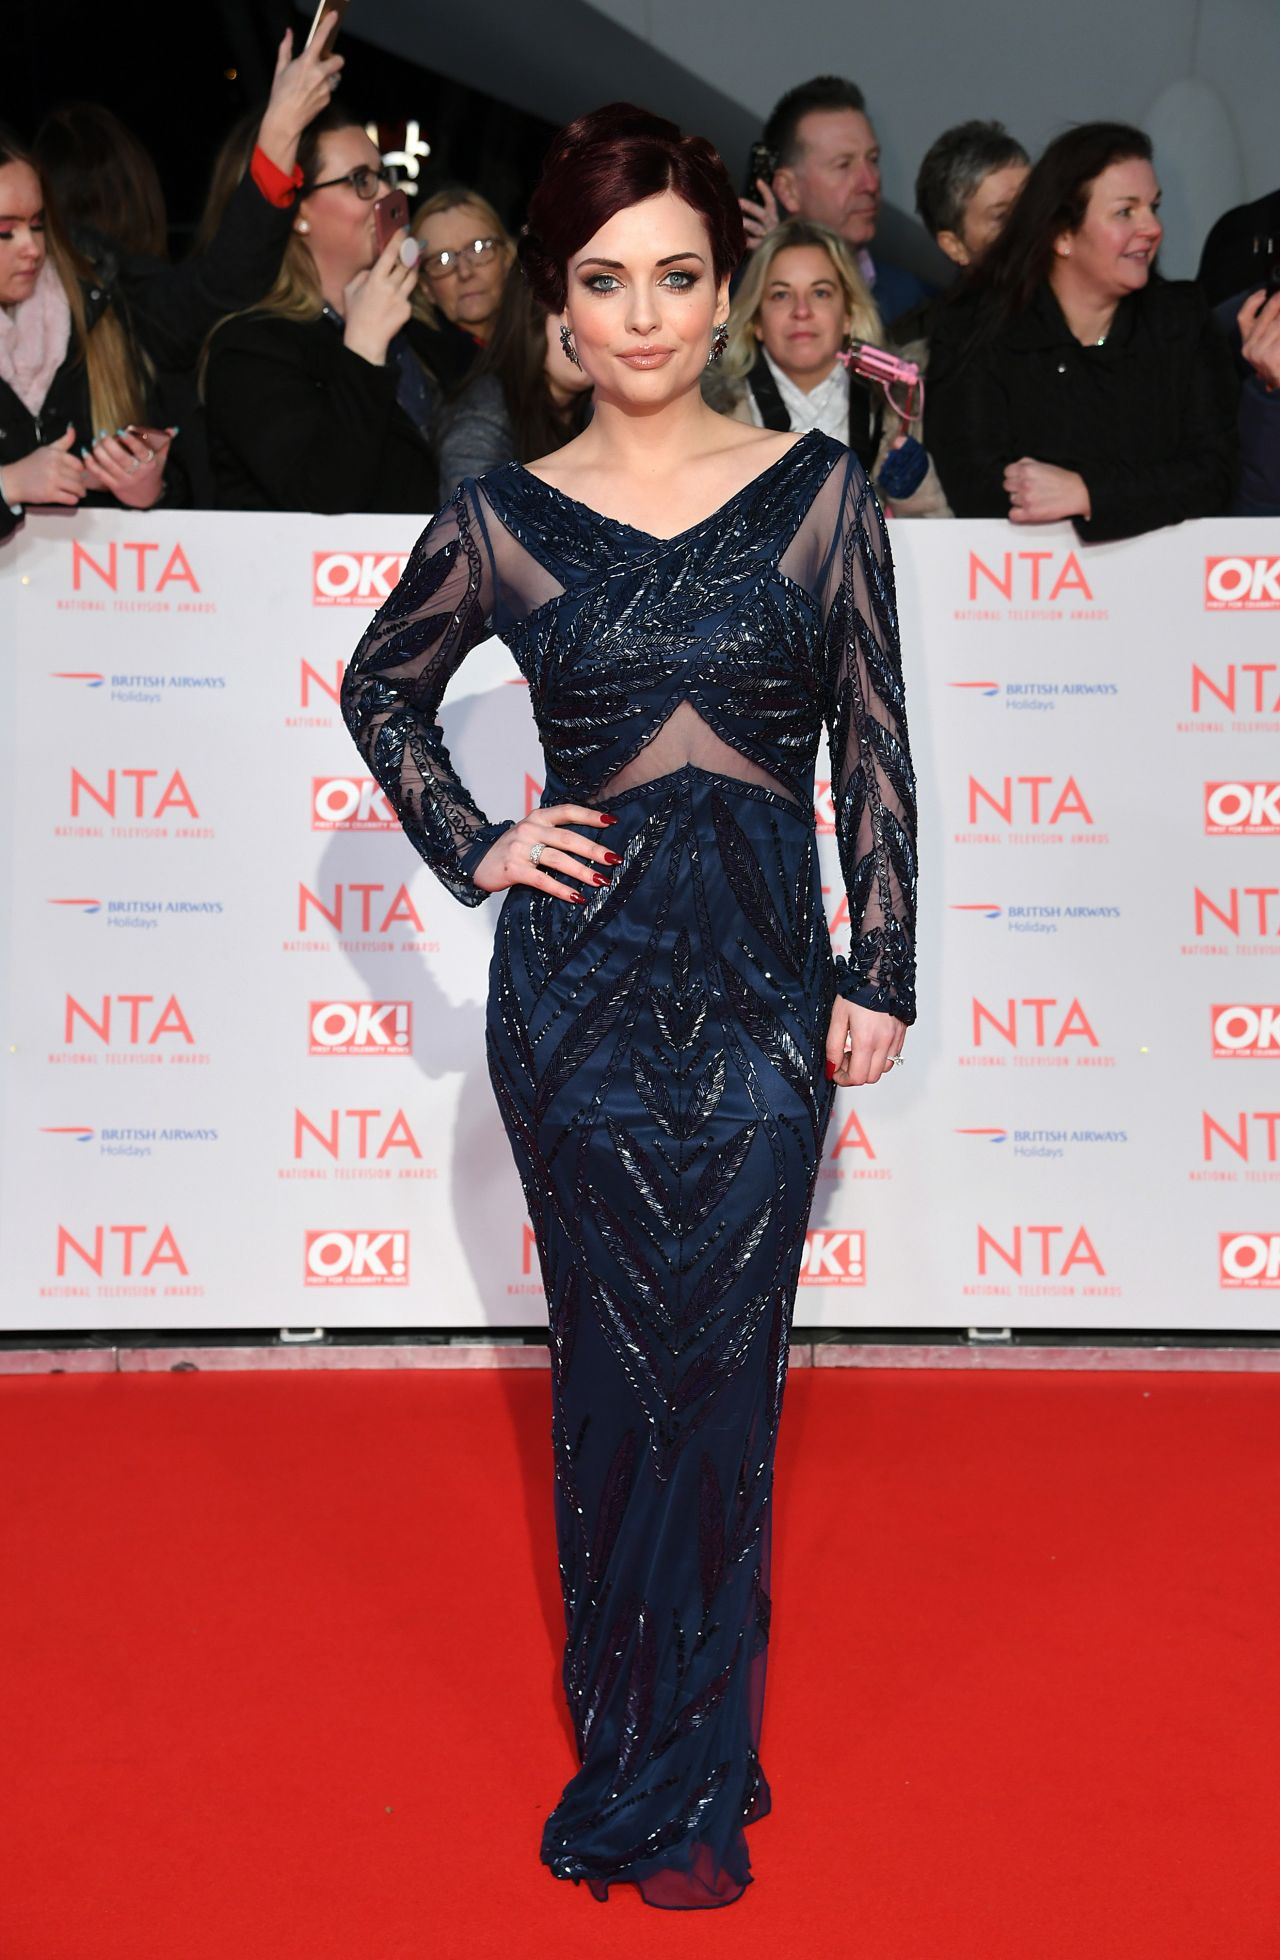 Pic Shona McGarty nude (21 photo), Topless, Hot, Boobs, braless 2017